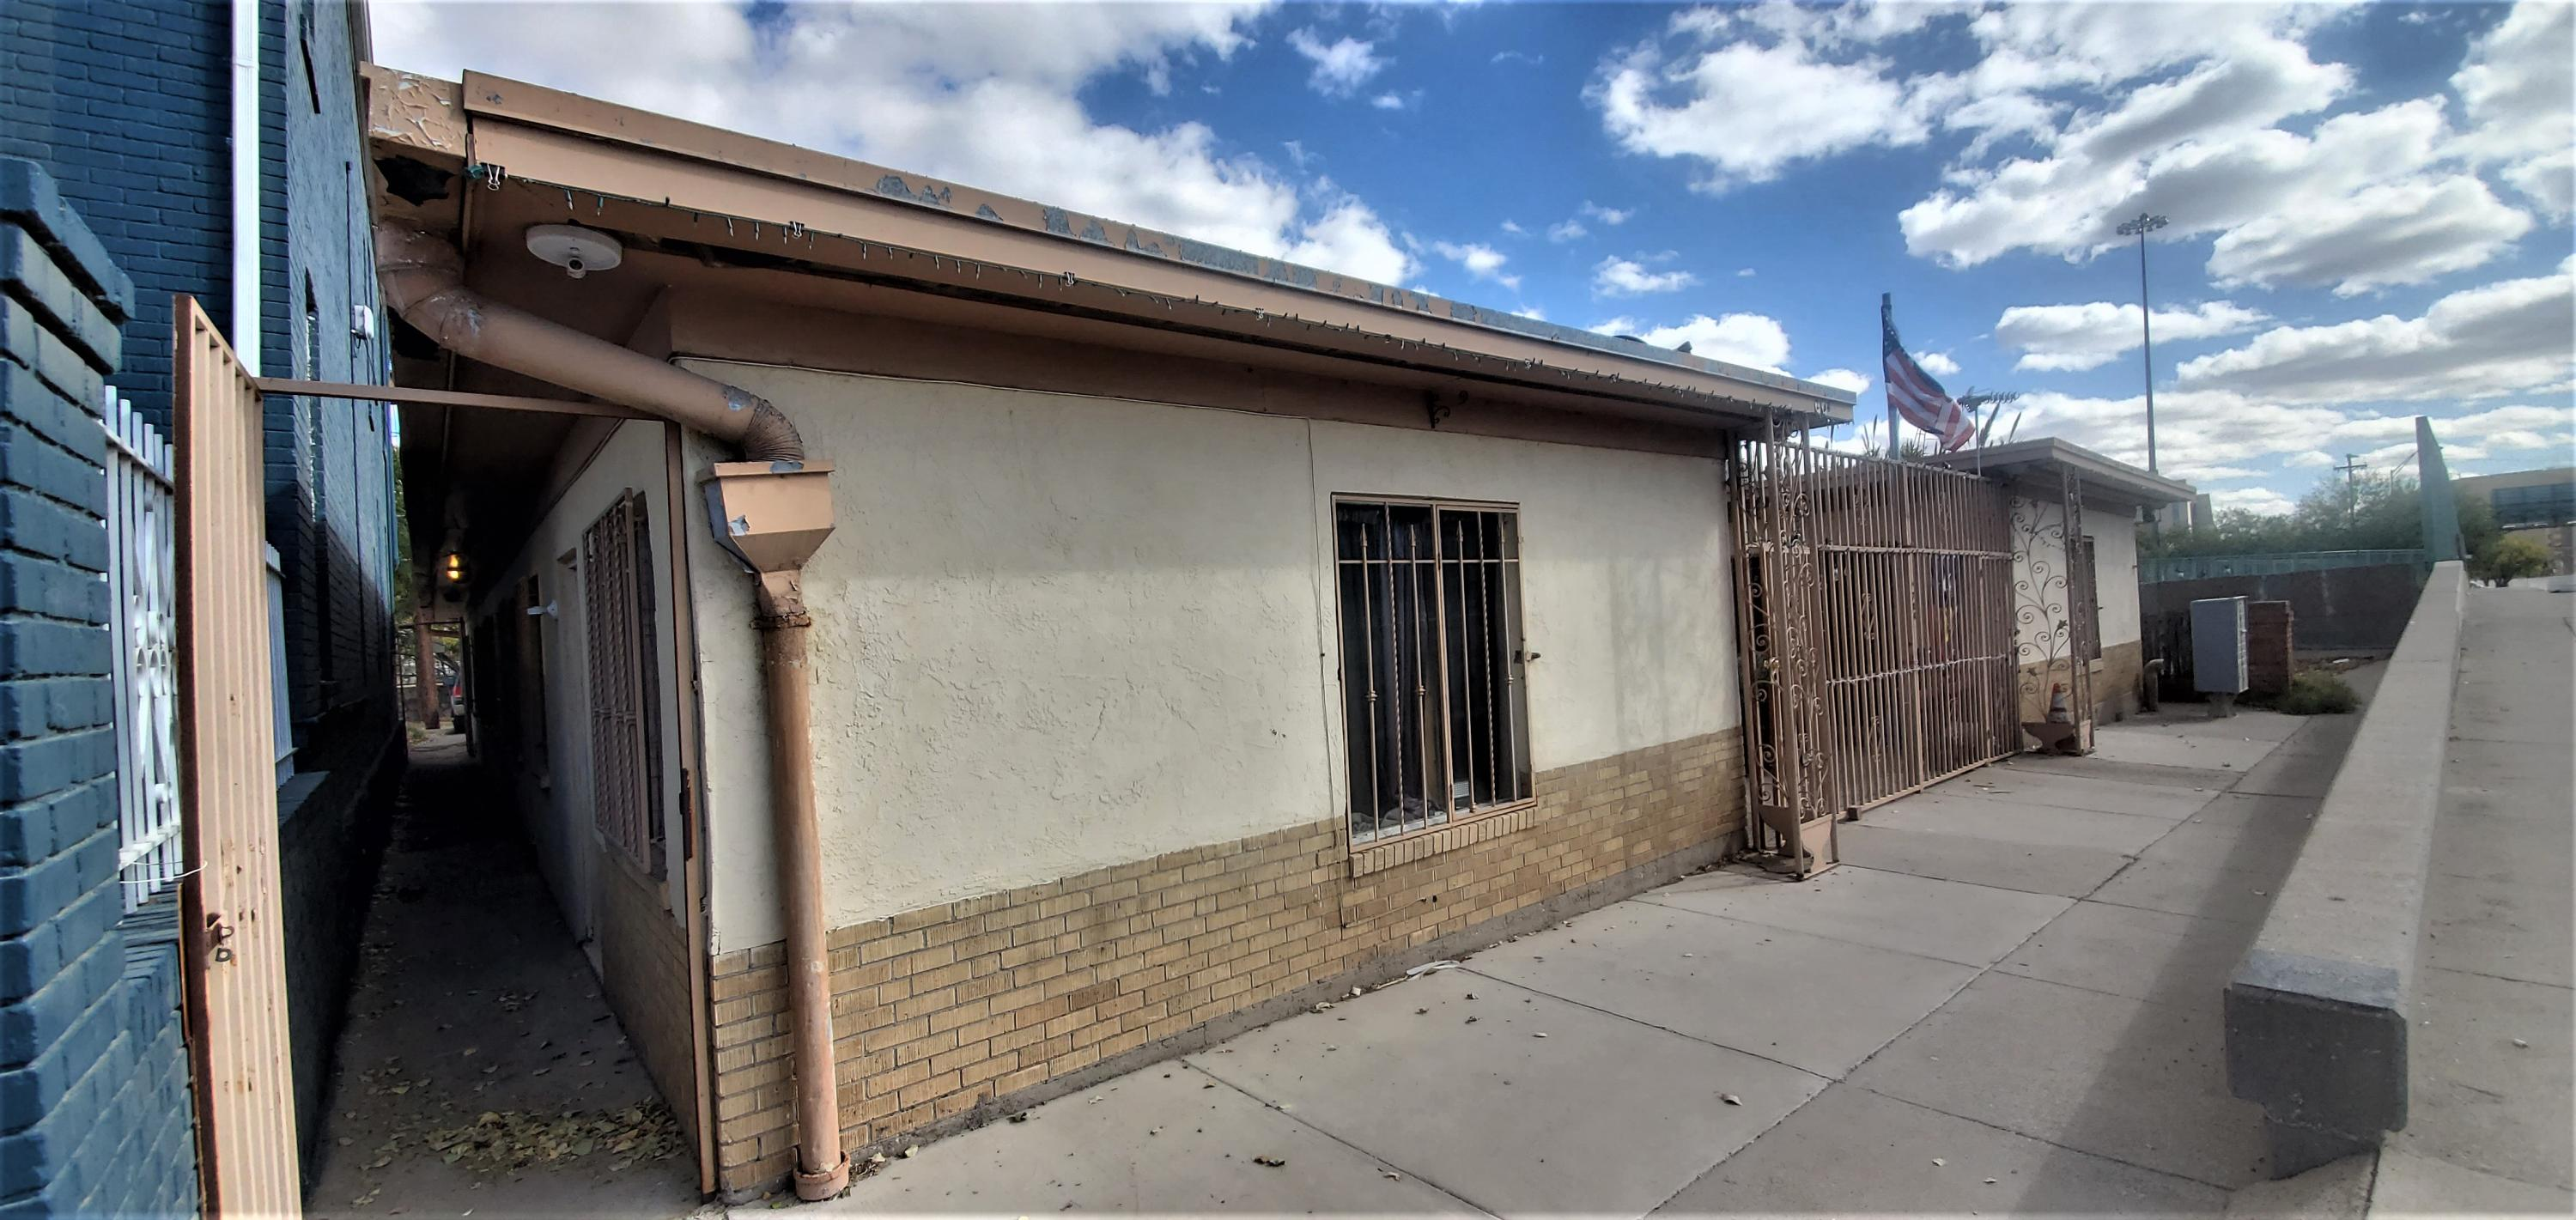 704 CAMPBELL Street, El Paso, Texas 79902, 1 Bedroom Bedrooms, ,1 BathroomBathrooms,Residential Rental,For Rent,CAMPBELL,837833